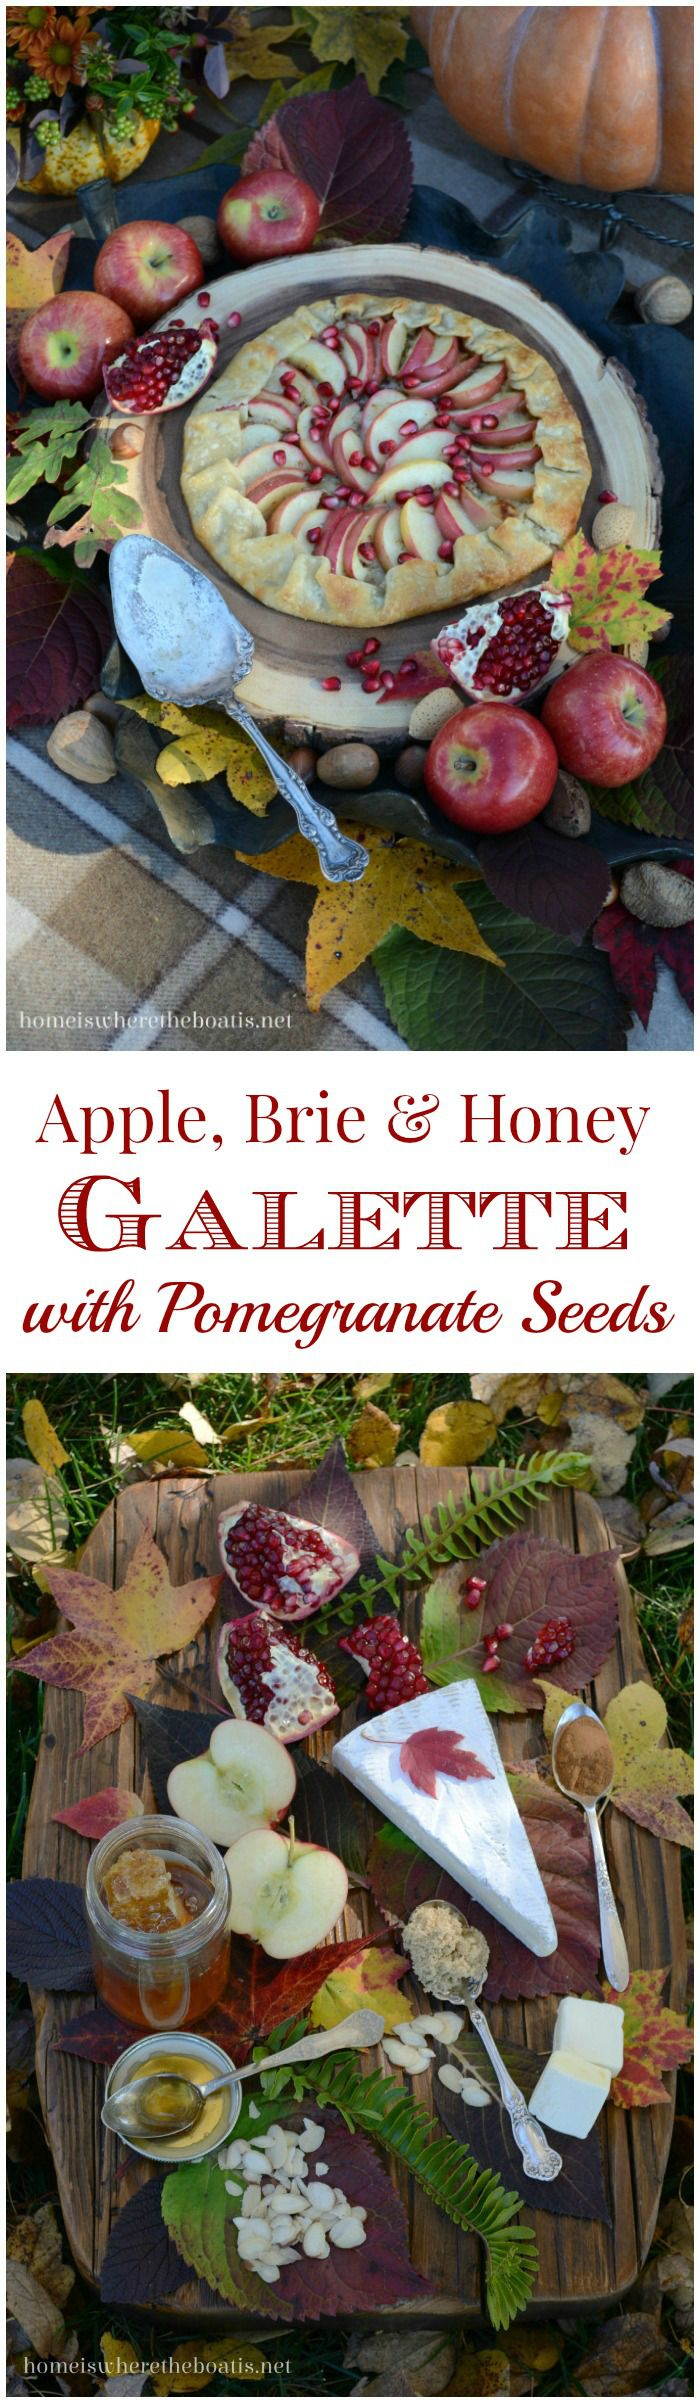 Easy, Brie-sy, Apple & Honey Galette with Pomegranate An easy and delicious recipe you can whip up using store-bought pie dough and just a few ingredients!